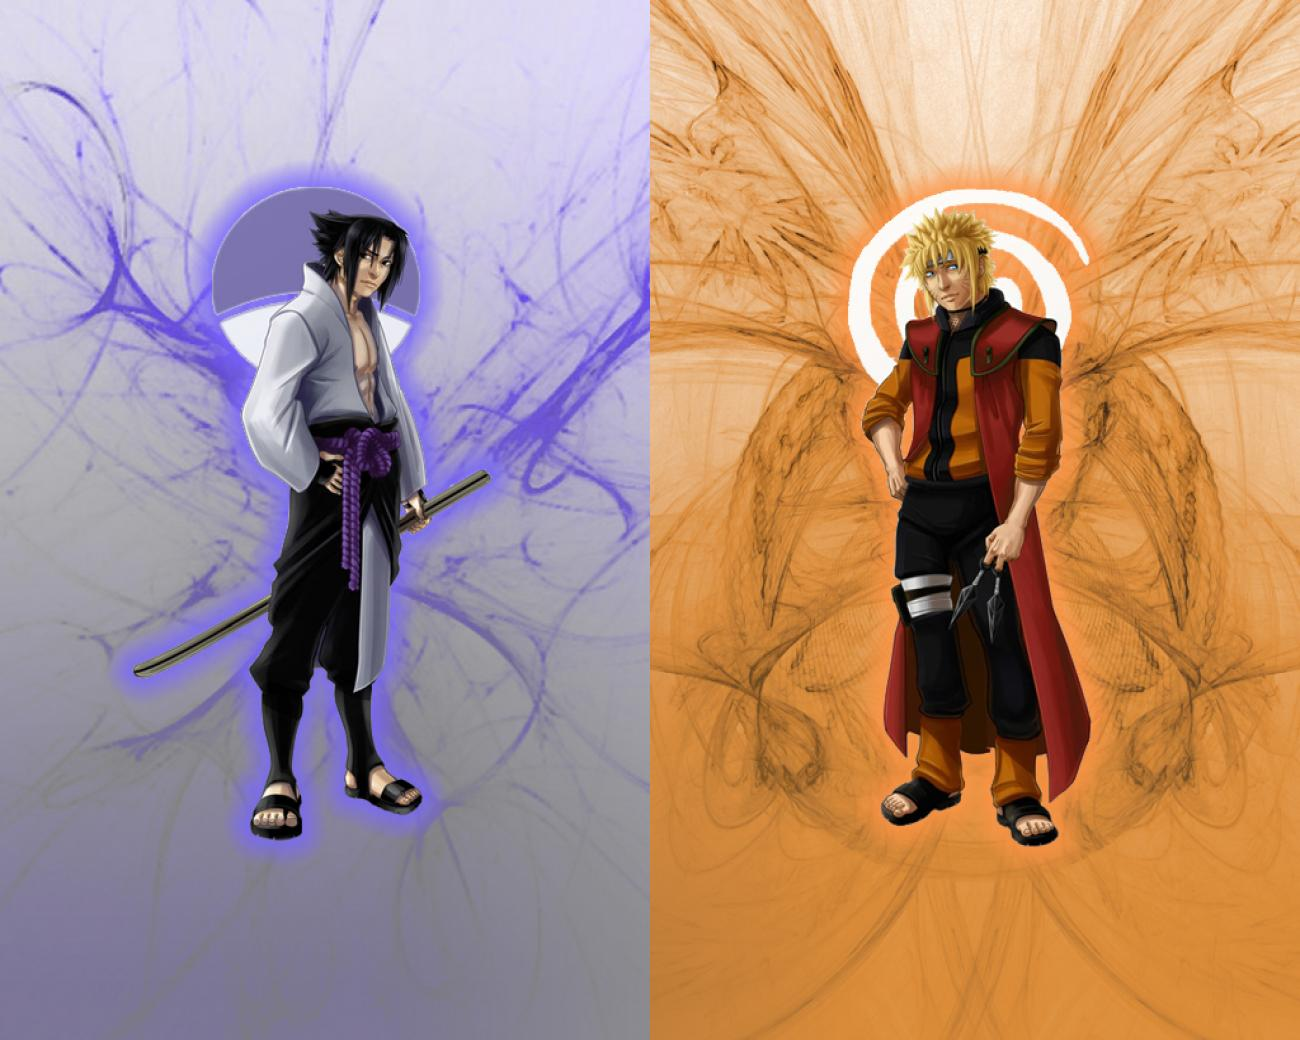 Free Download Naruto Vs Sasuke Wallpaper 5 Hd Wallpaper Trendy